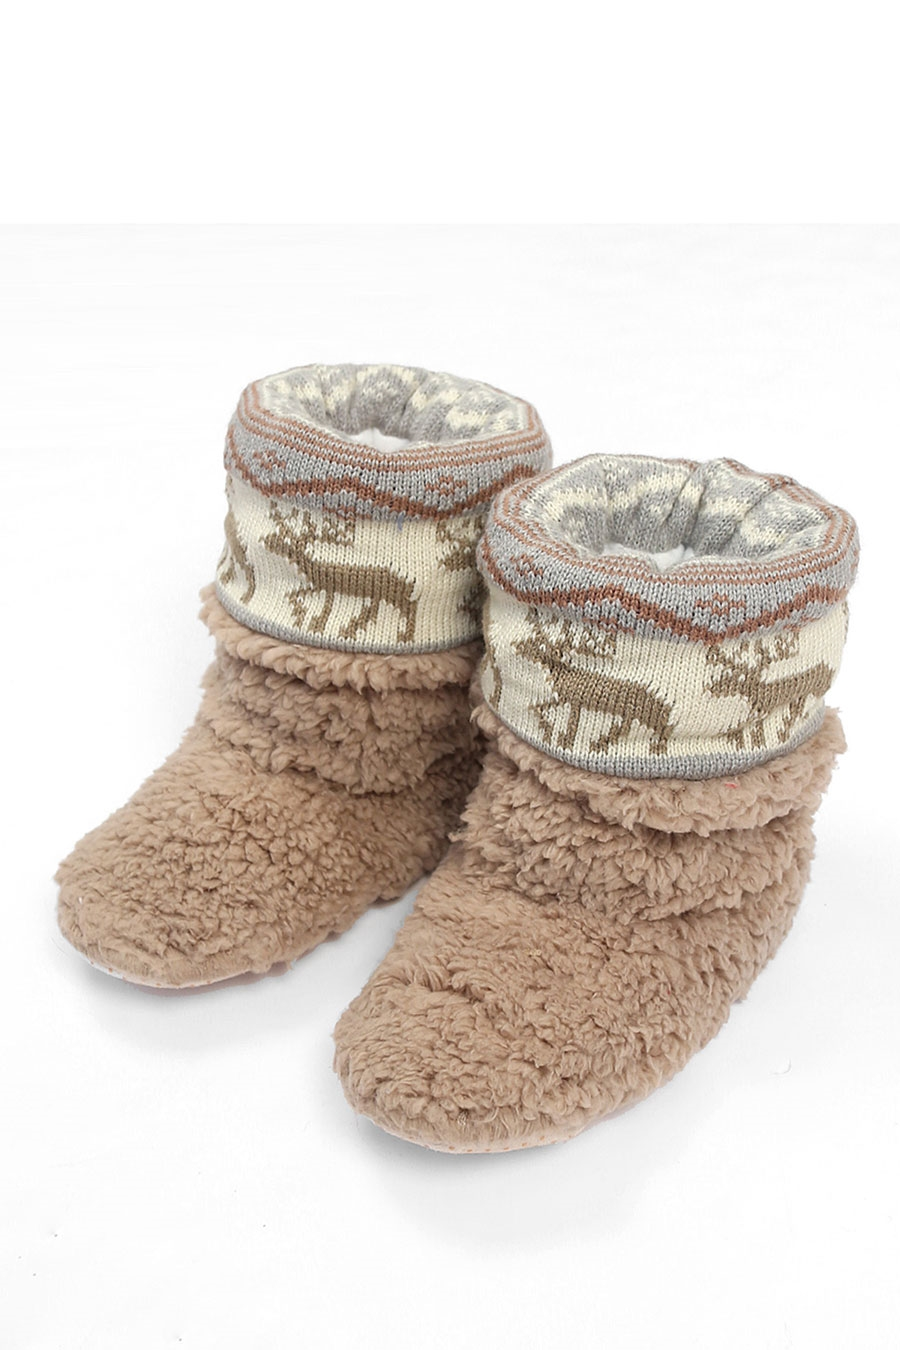 NORDIC PATTERN SLIPPERS - orangeshine.com